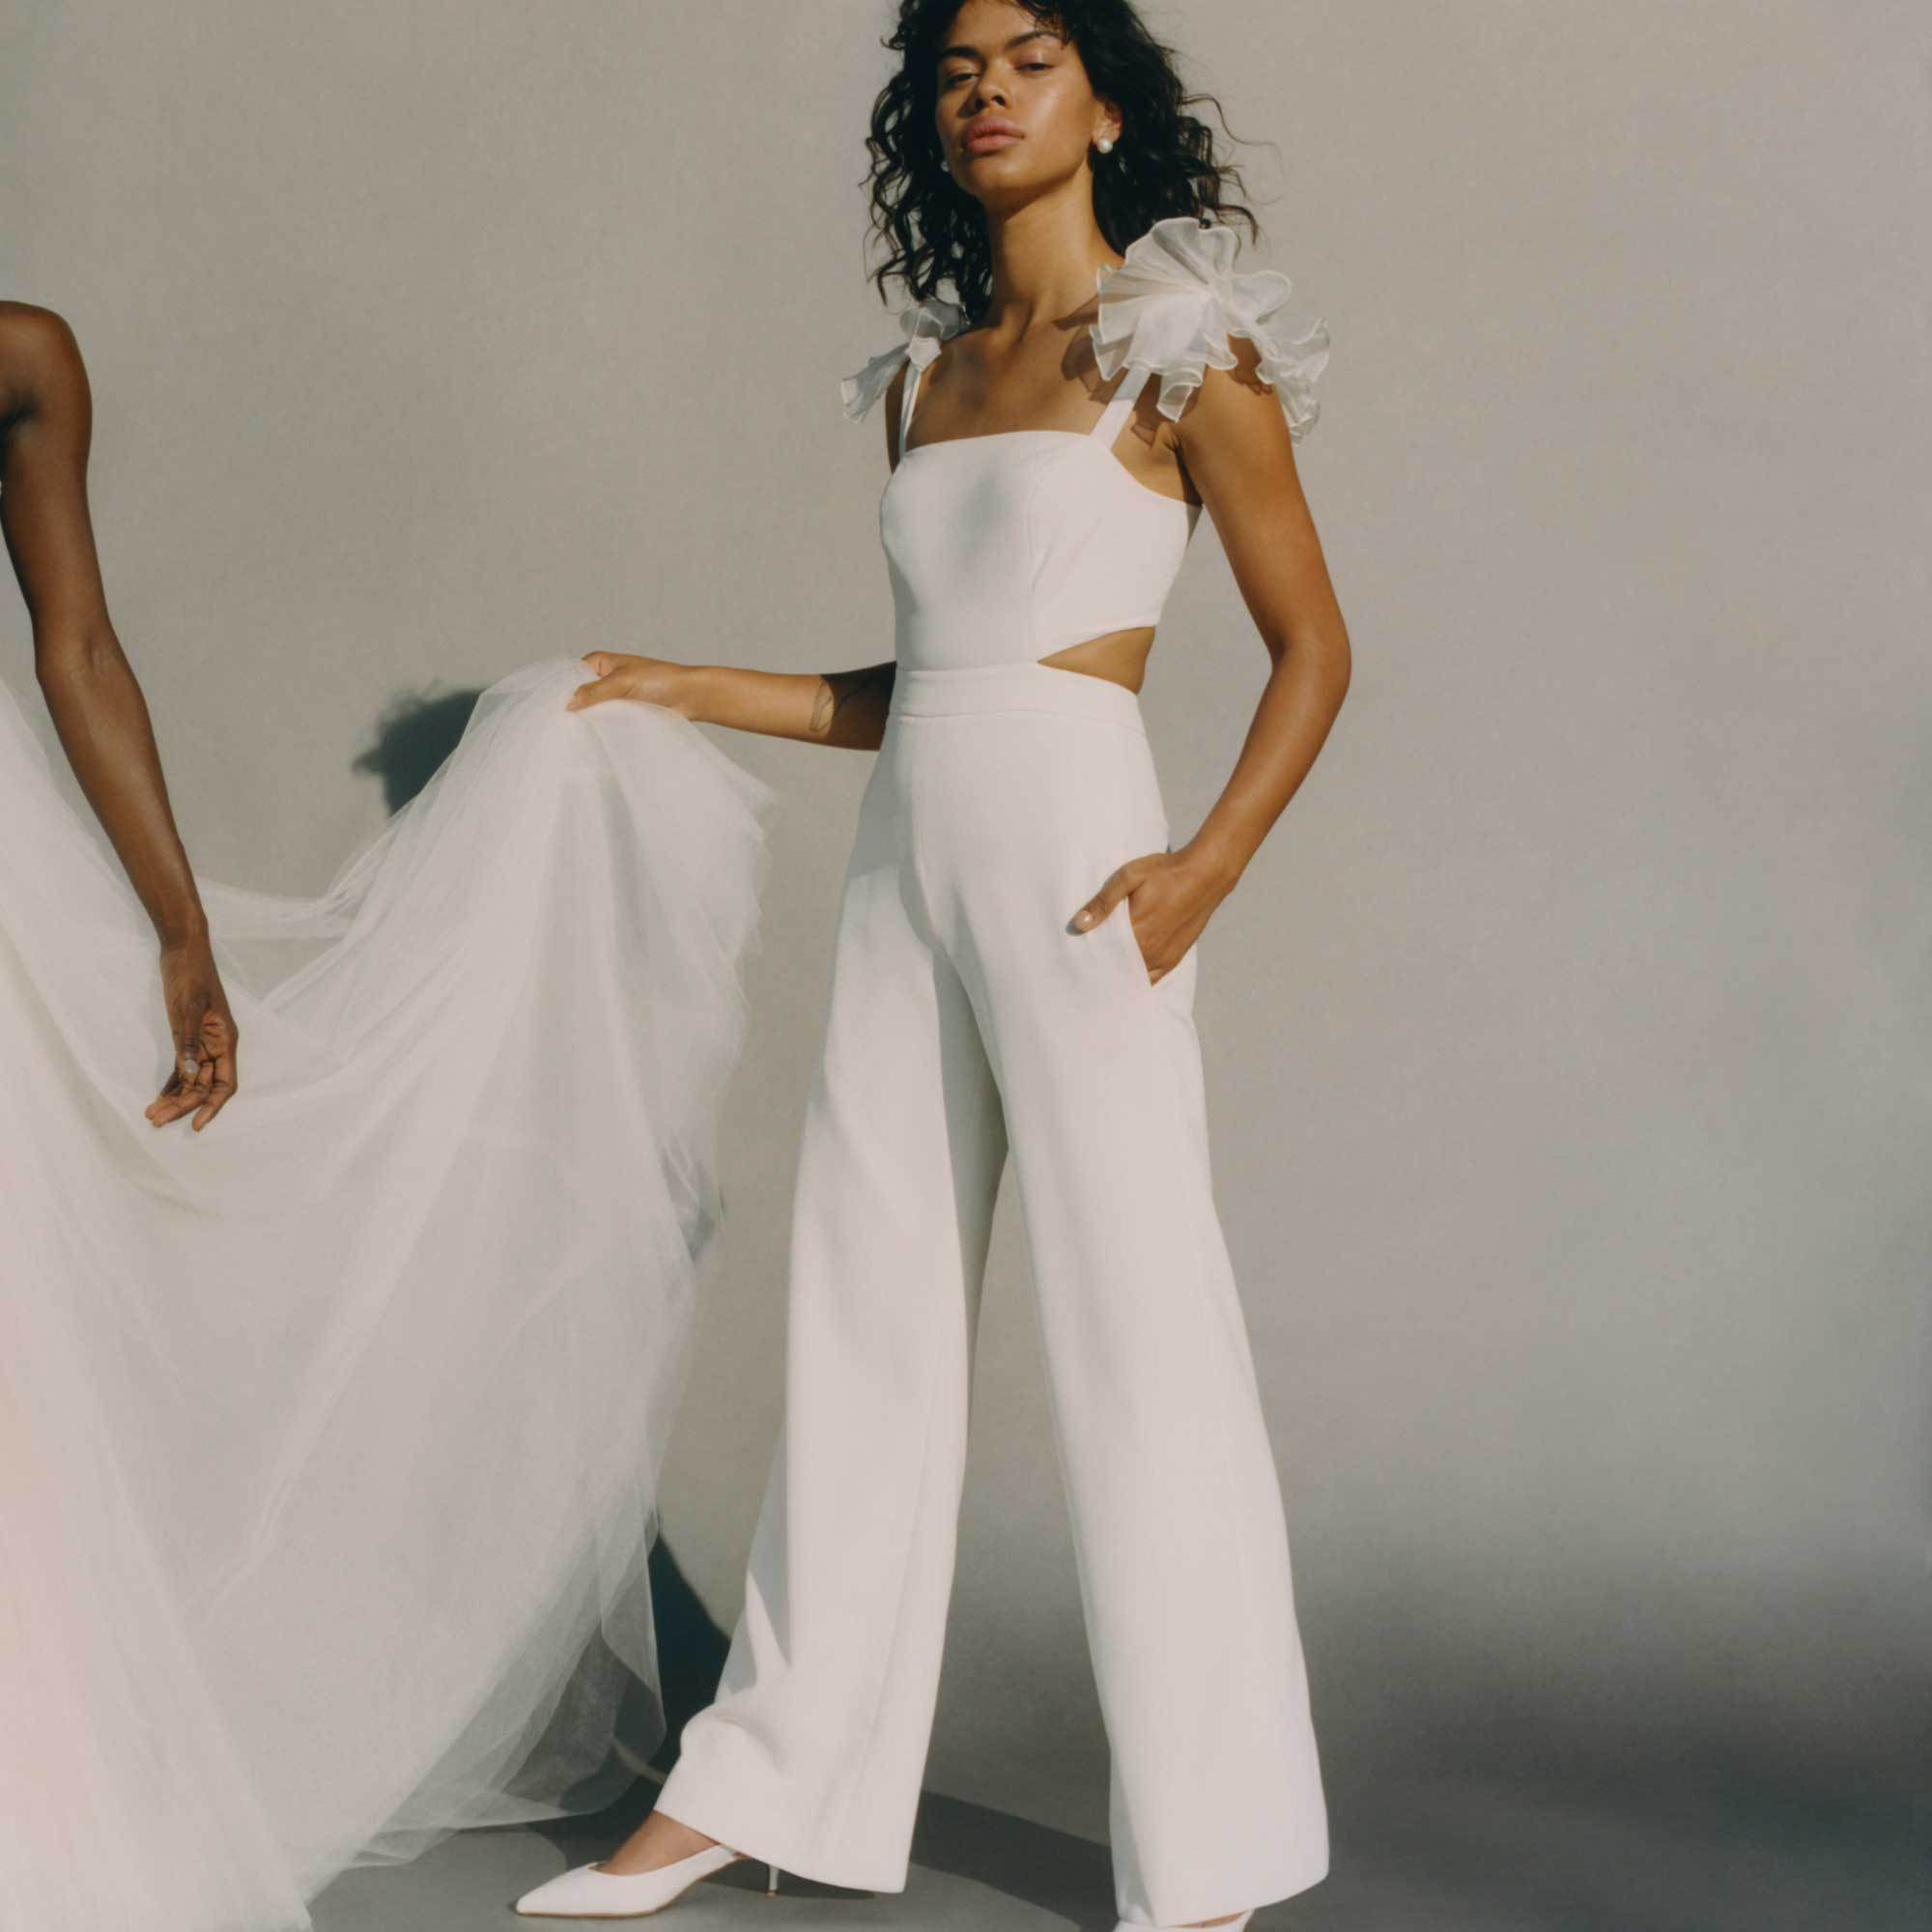 20 Best Wedding Jumpsuits Of 2021